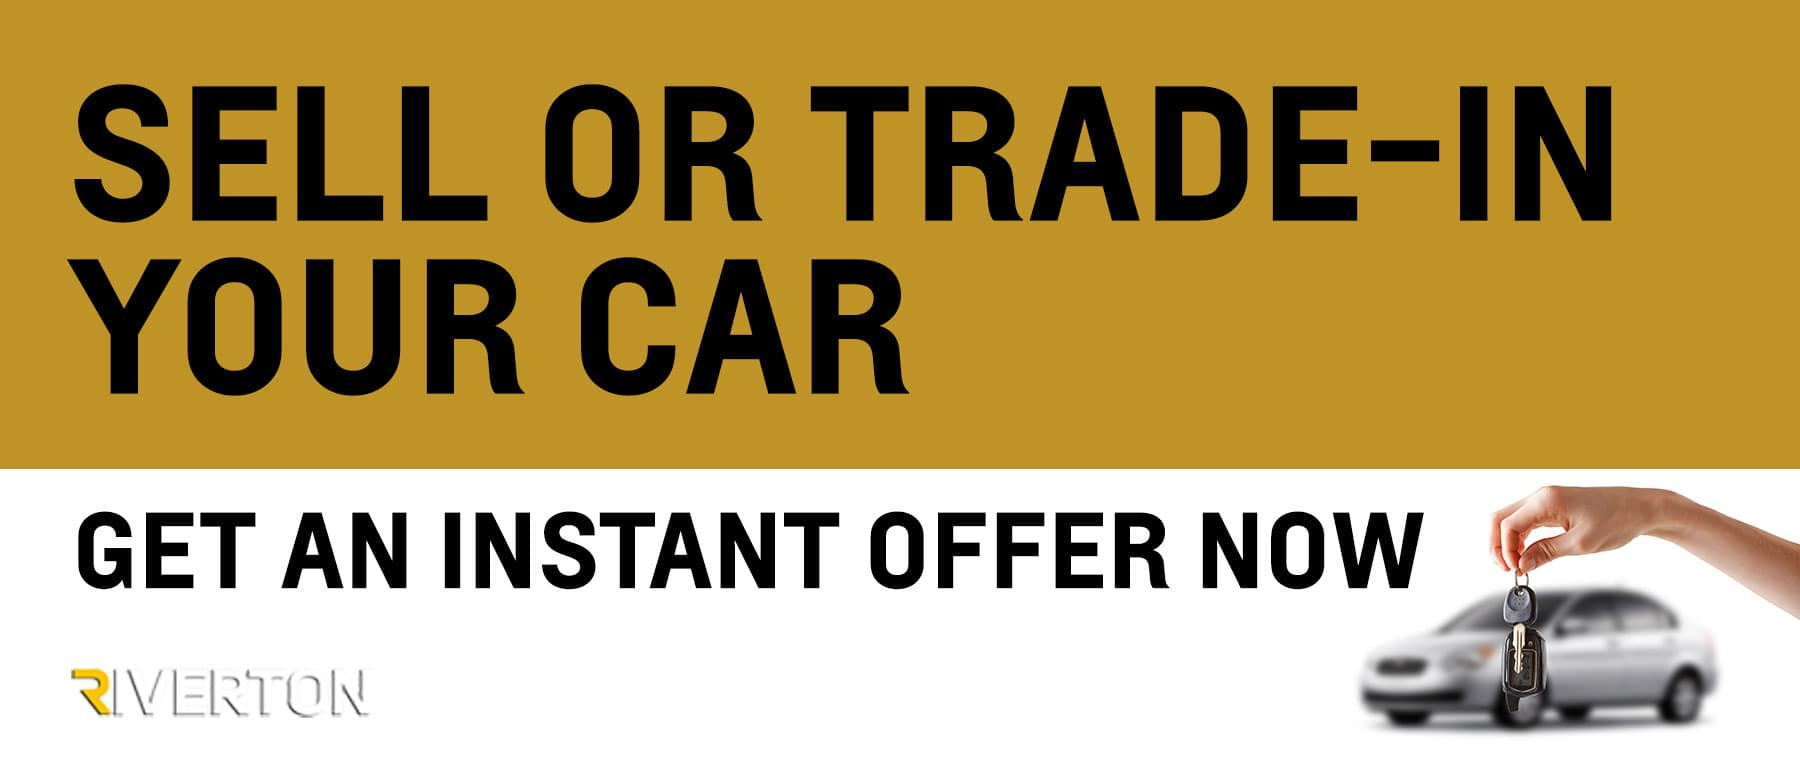 SELL OR TRADE-IN YOUR CAR Get an instant offer now